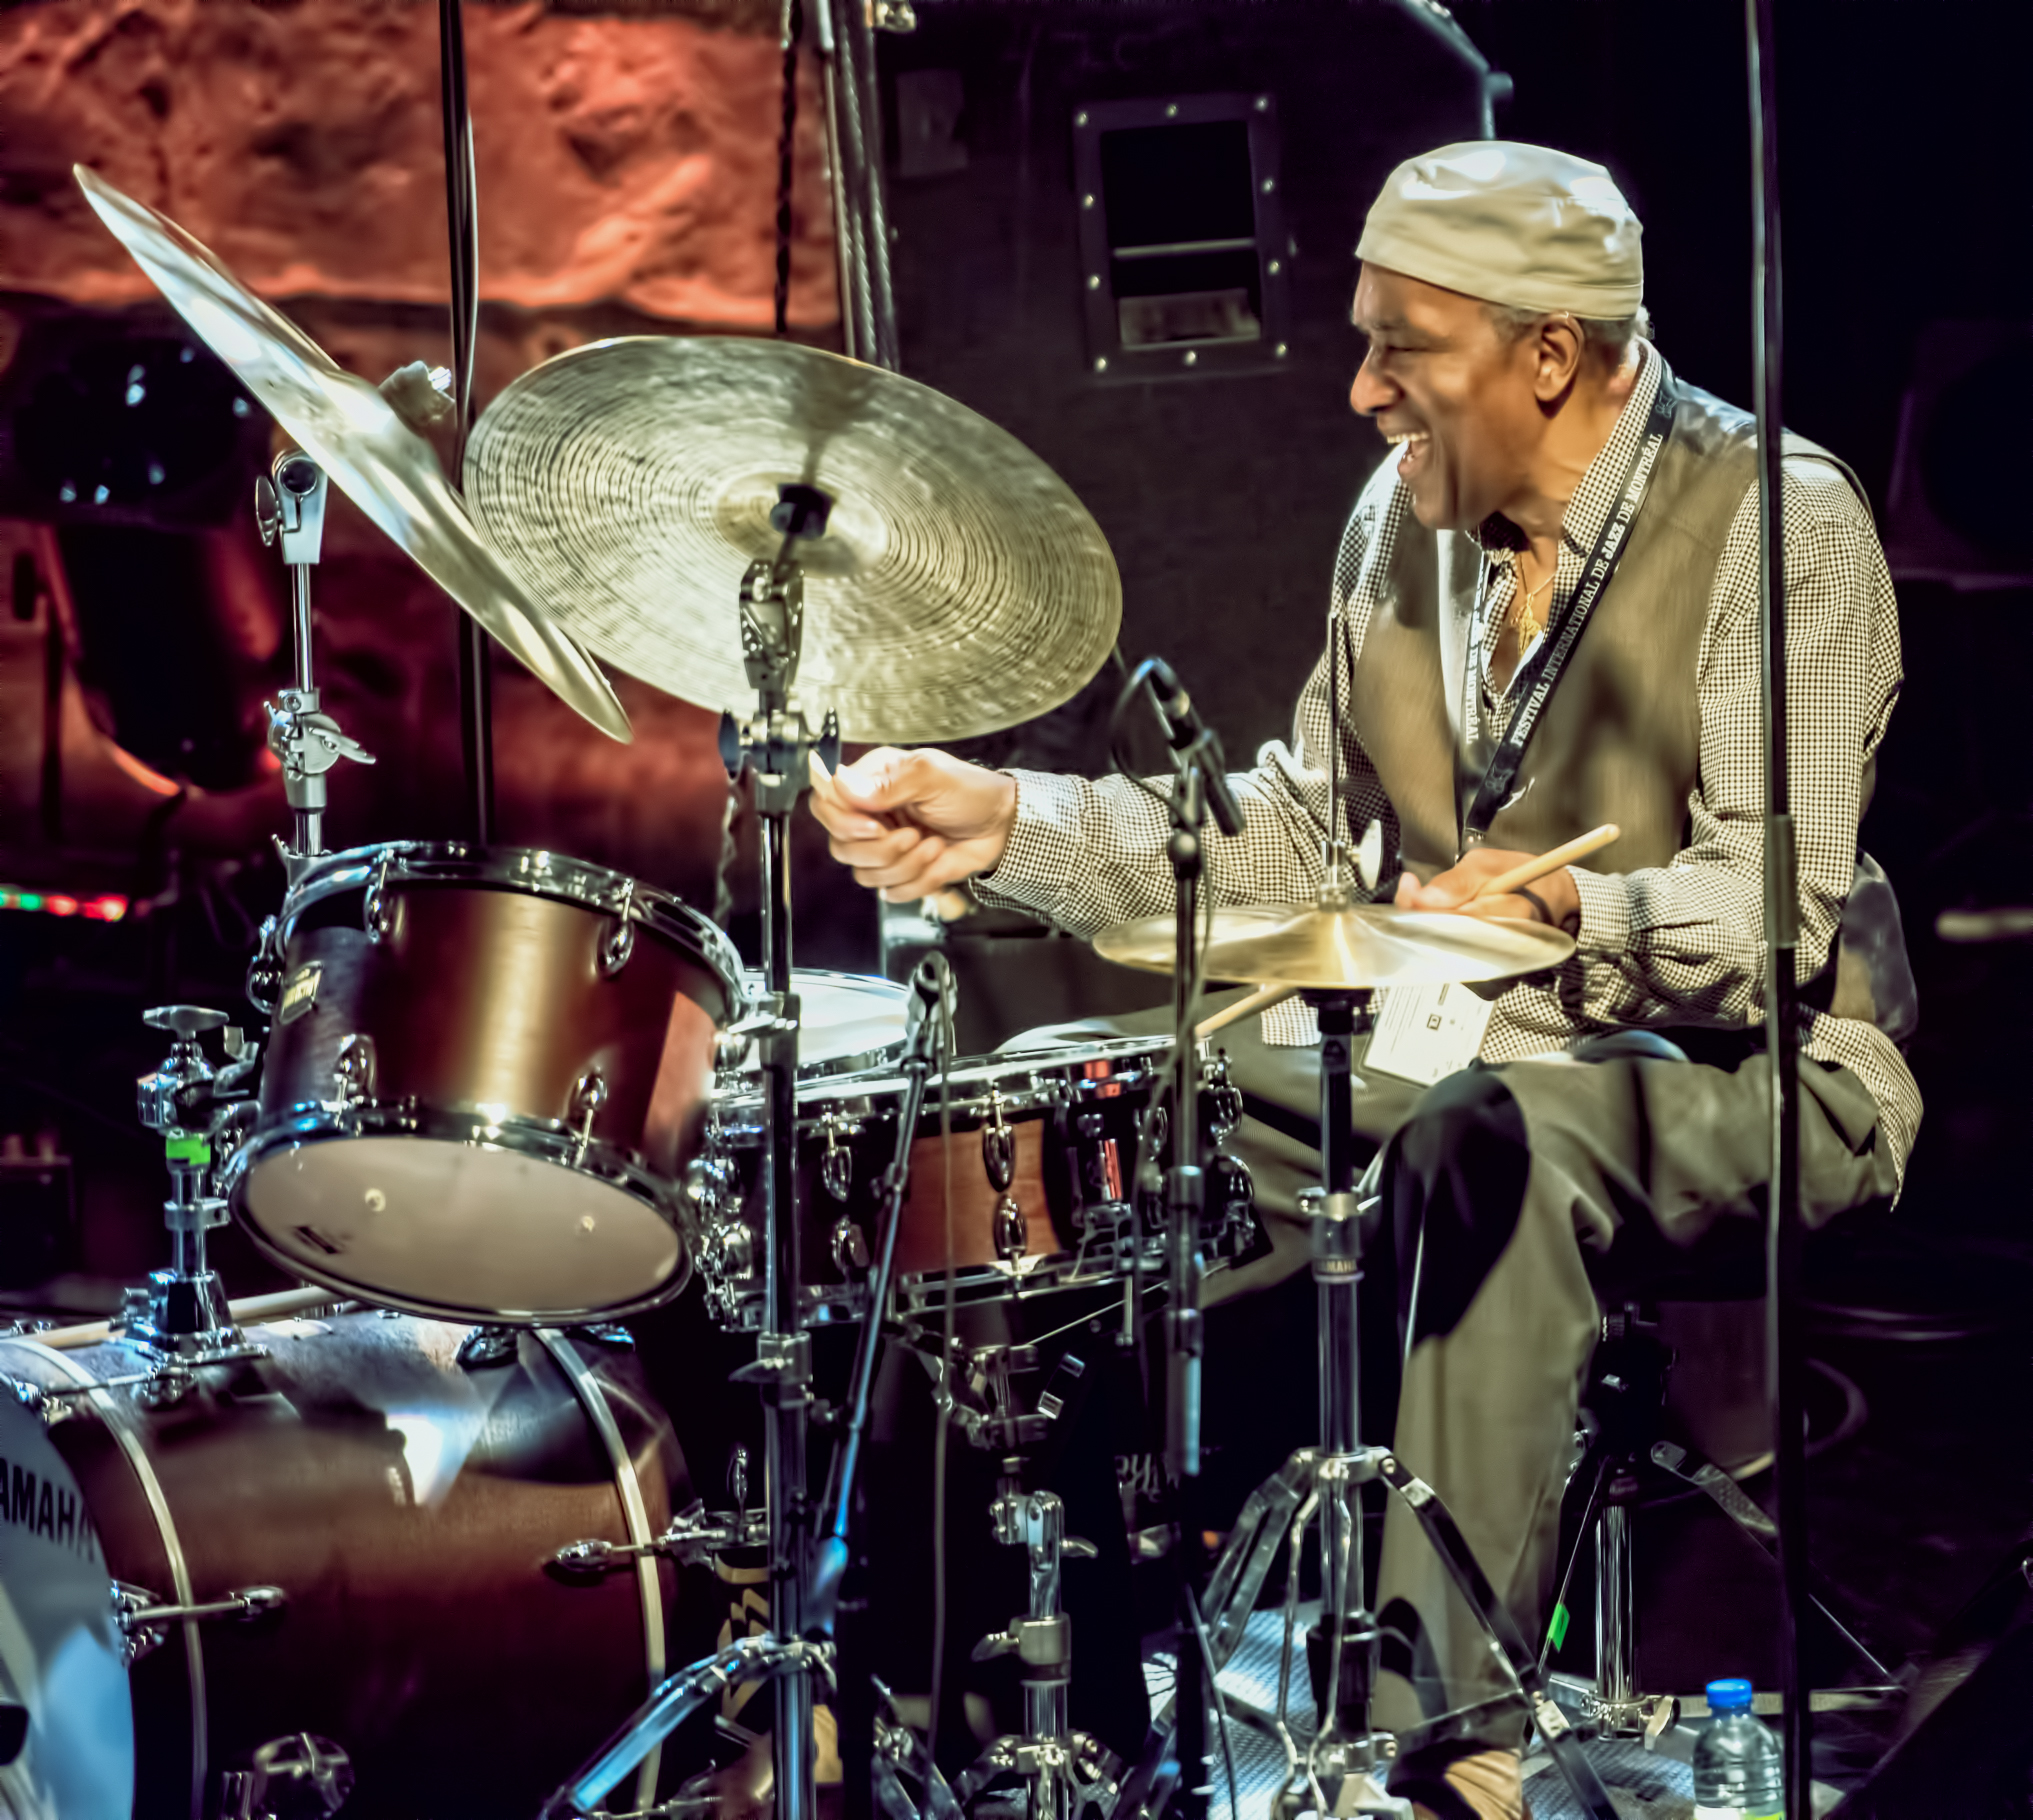 Al Foster With Heads Of State At The Montreal International Jazz Festival 2015